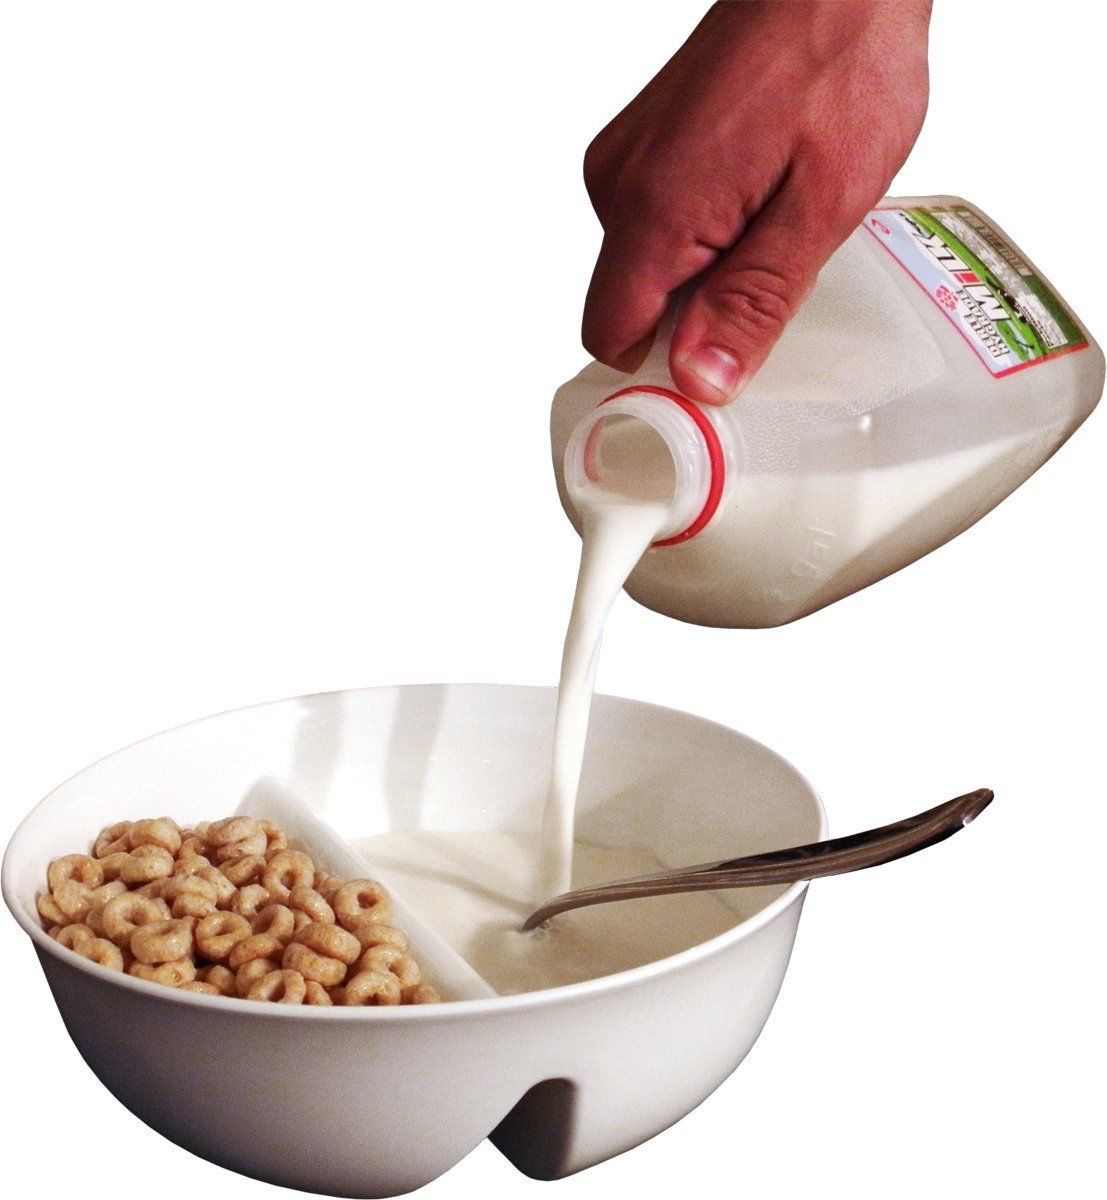 NEW Anti-Soggy Cereal Bowl from Just Solutions! A Must for Any Kitchen (1)